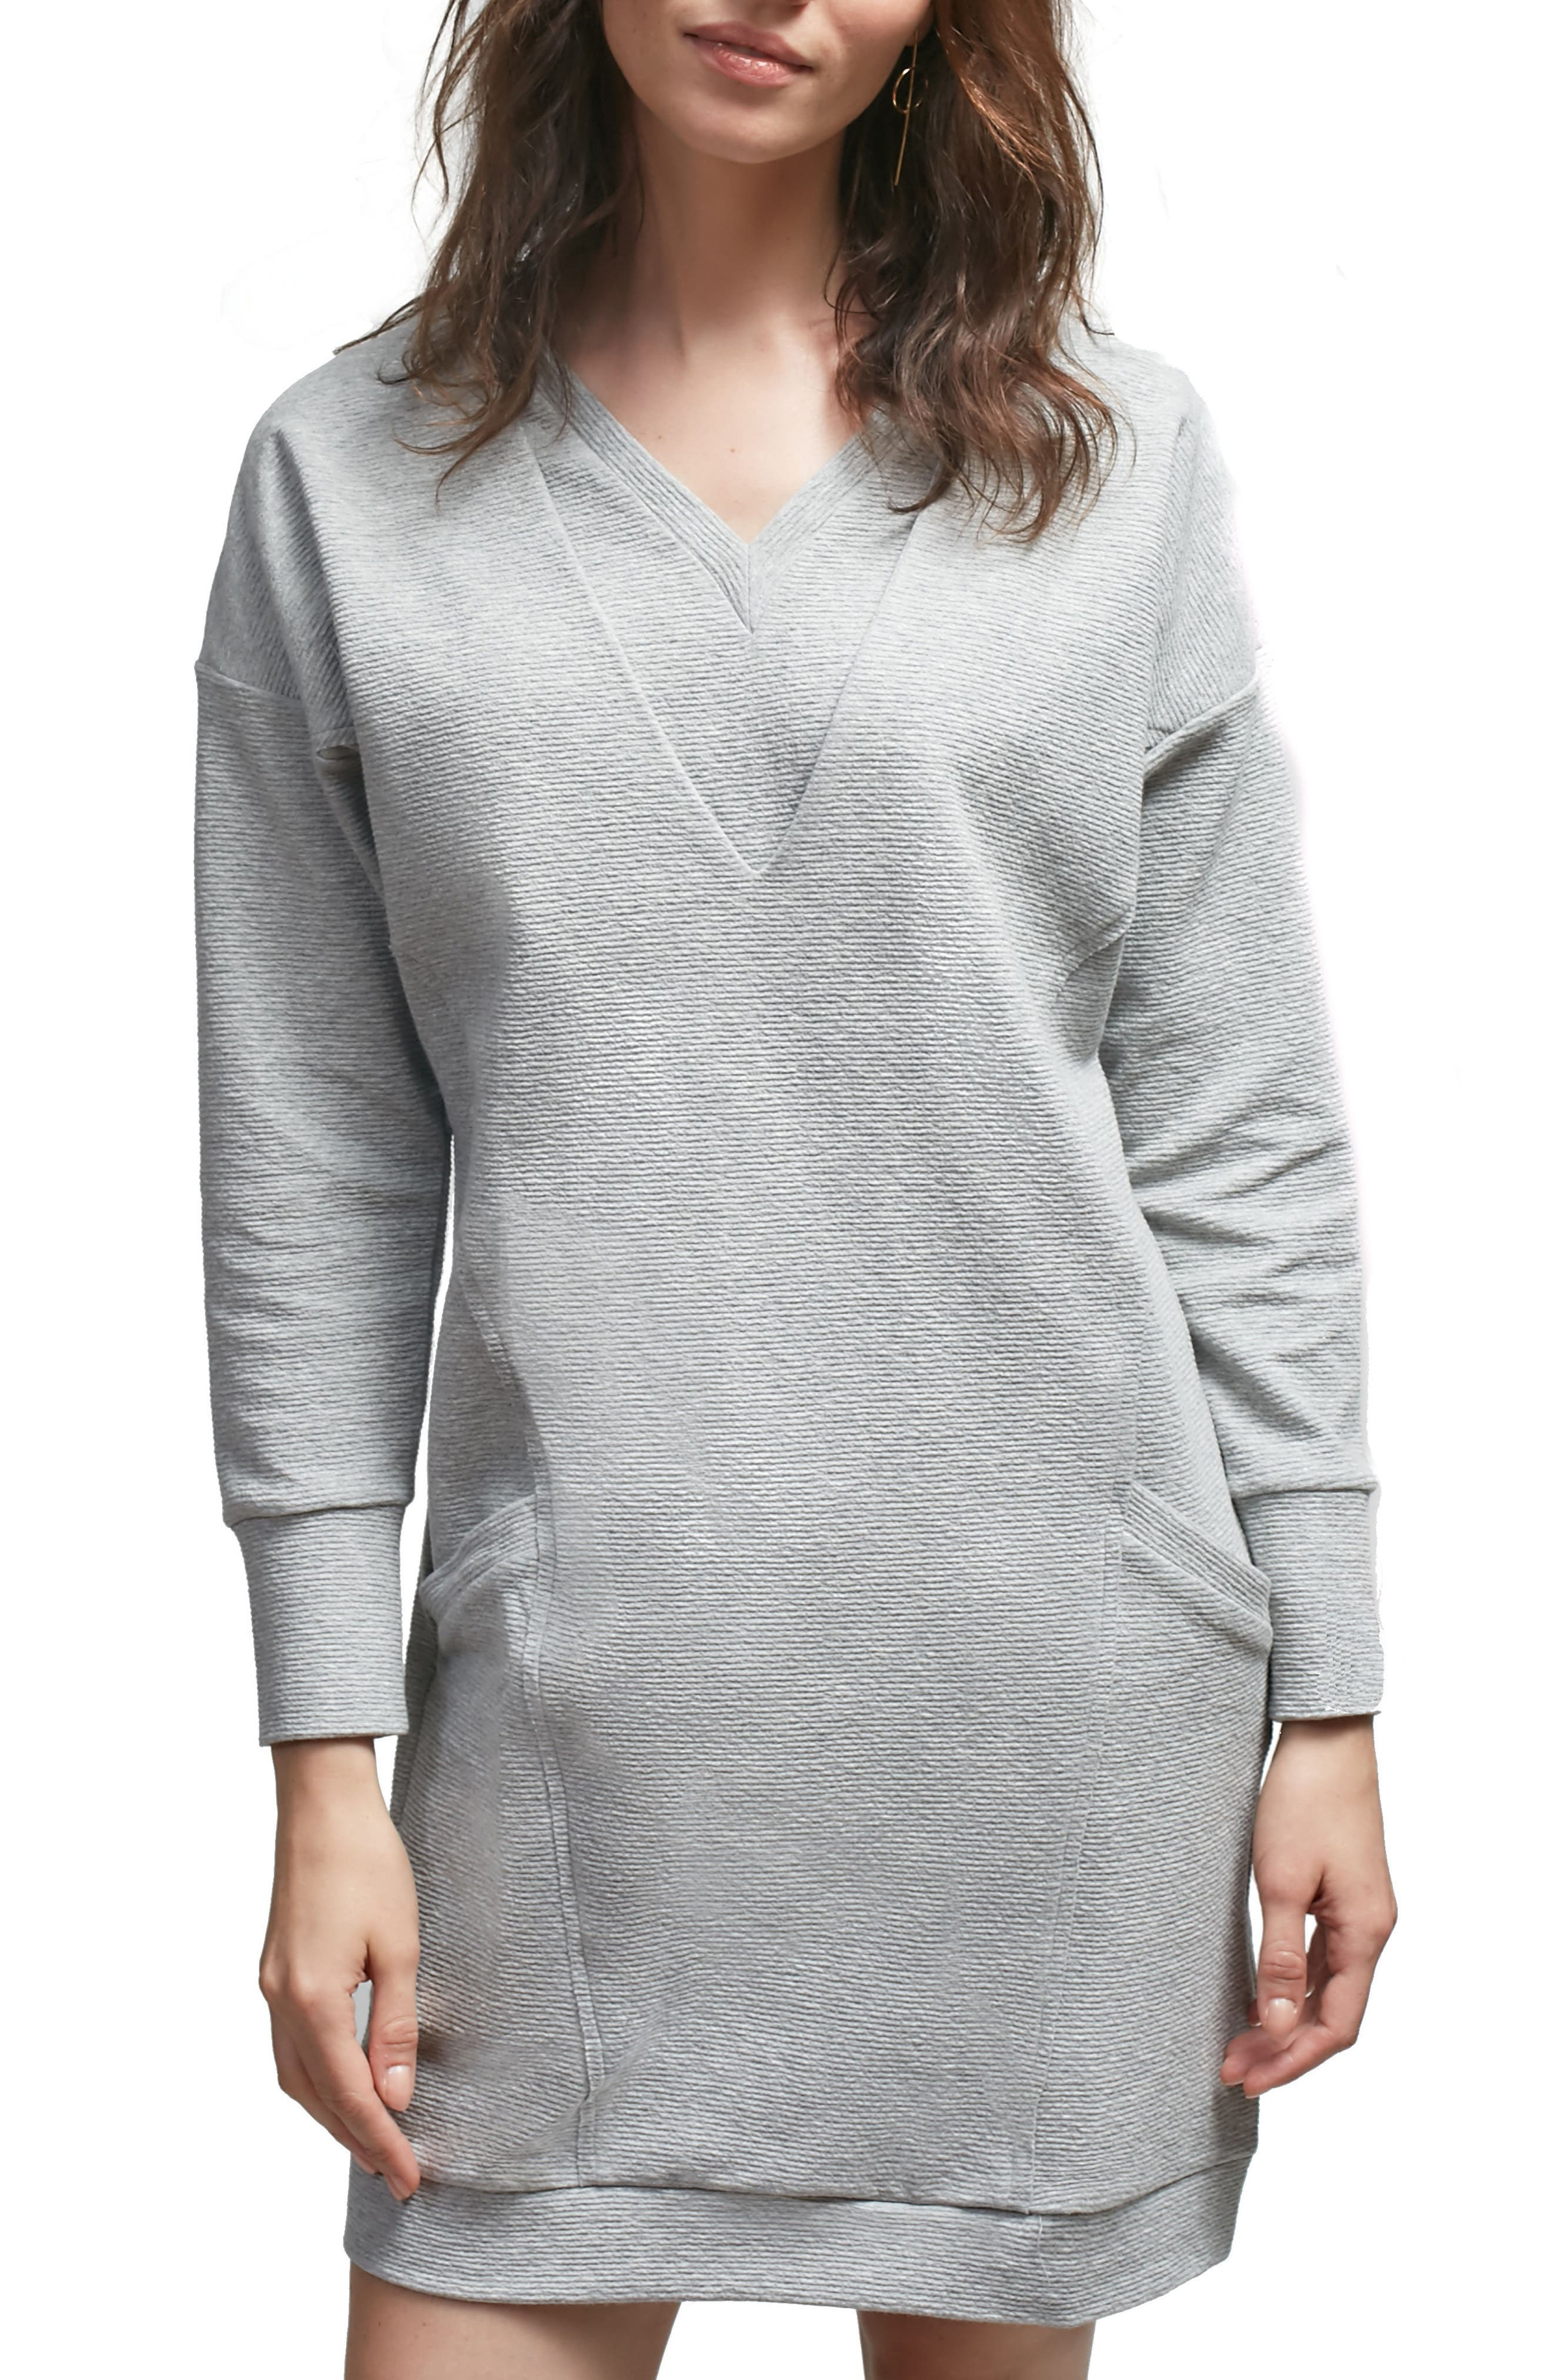 Alternate Image 1 Selected - Allette Margot Nursing Sweater Dress